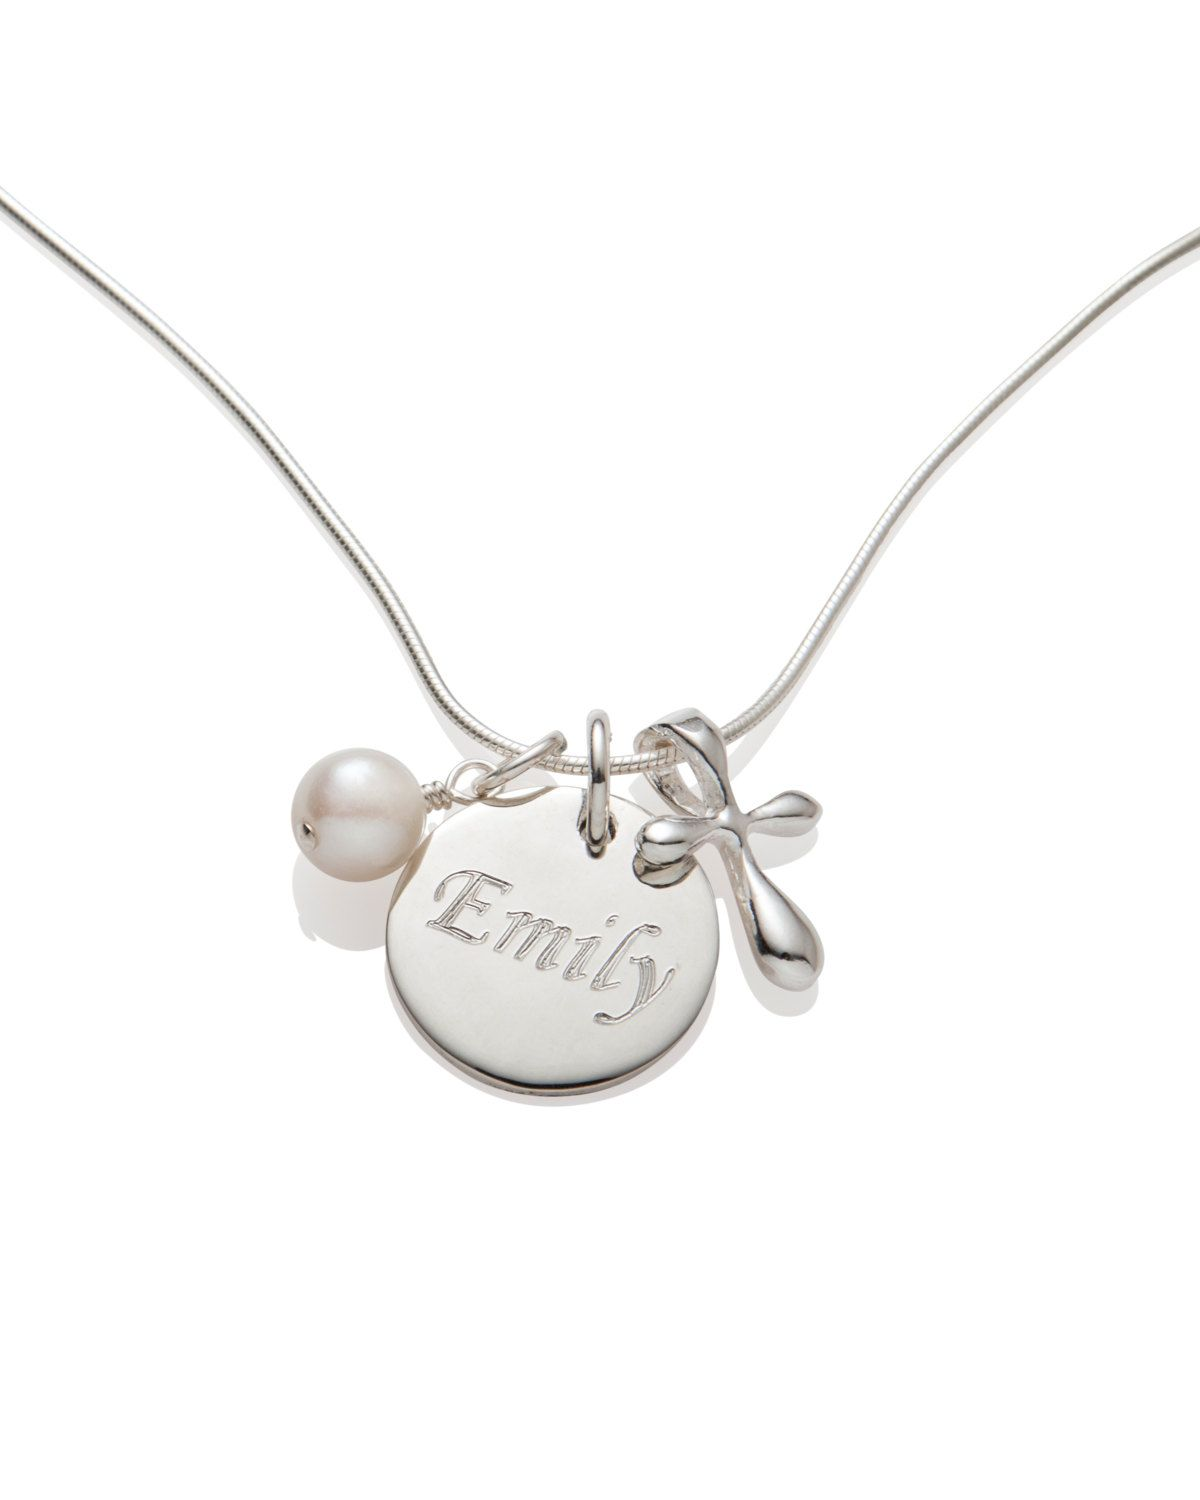 4875b7d1d Confirmation Gift Girl First Communion Gift Cross Necklace, Name and Date  Necklace, Personalized Engraved Cross Necklace R001